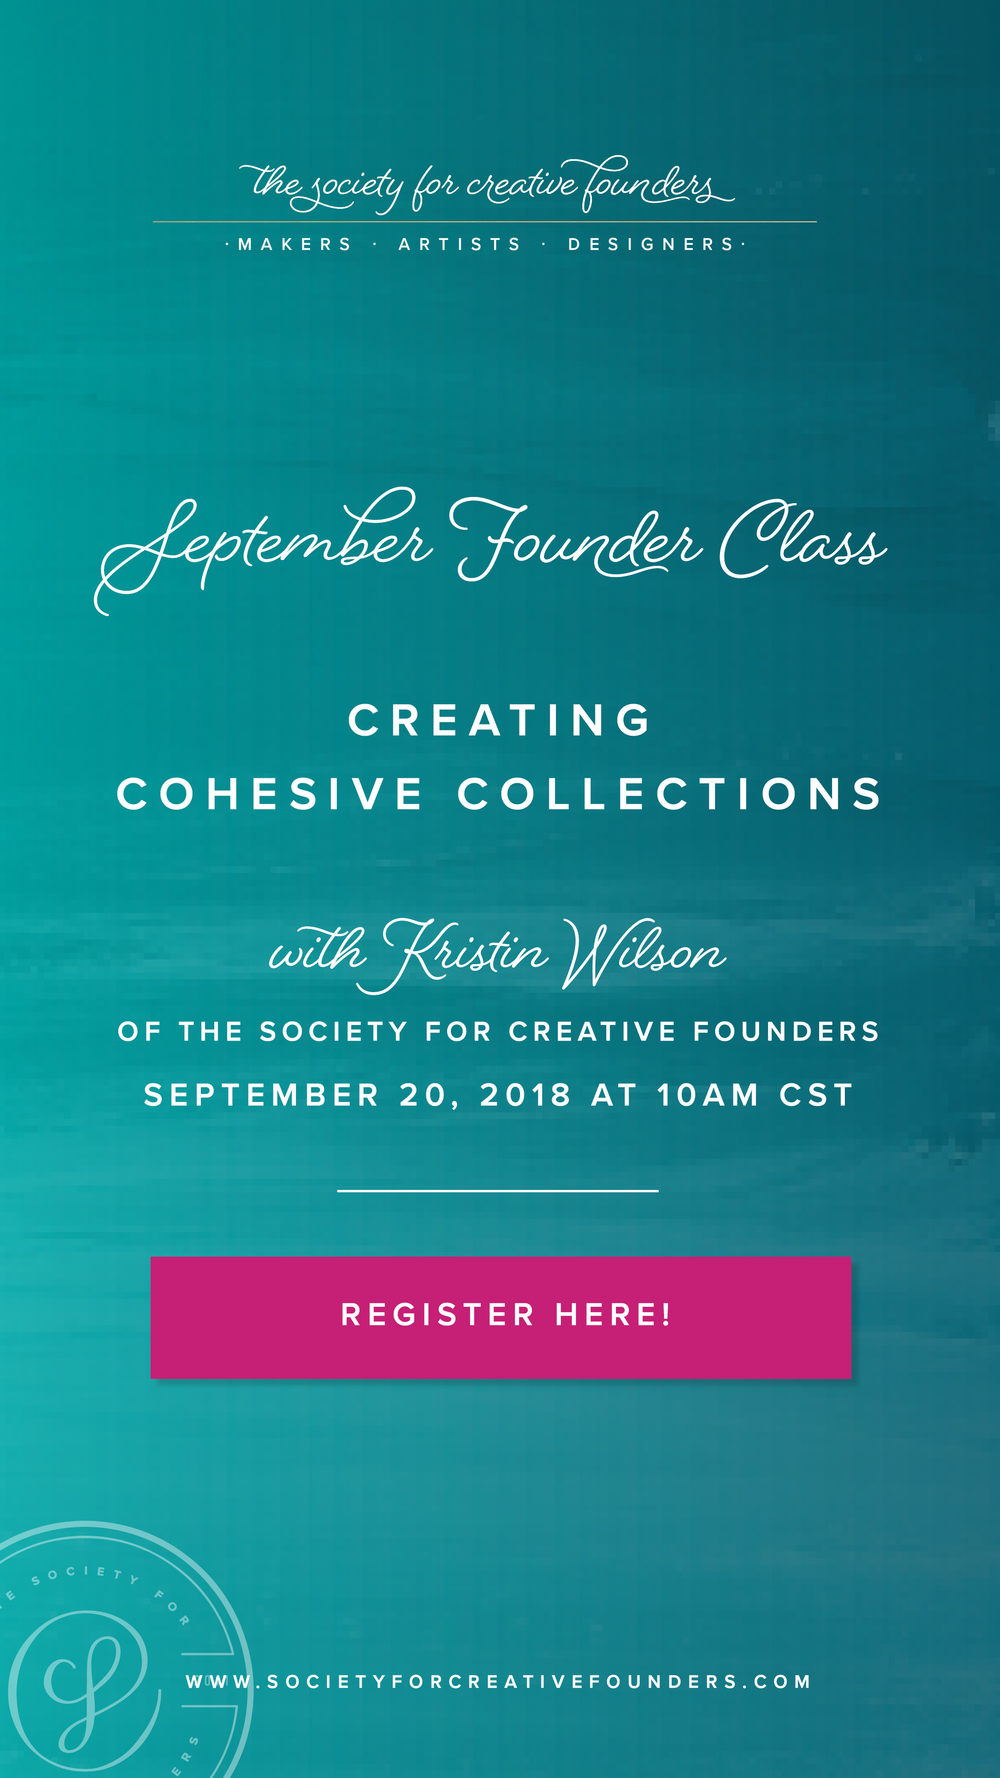 Creating Cohesive Collections - Founder Class by Society for Creative Founders